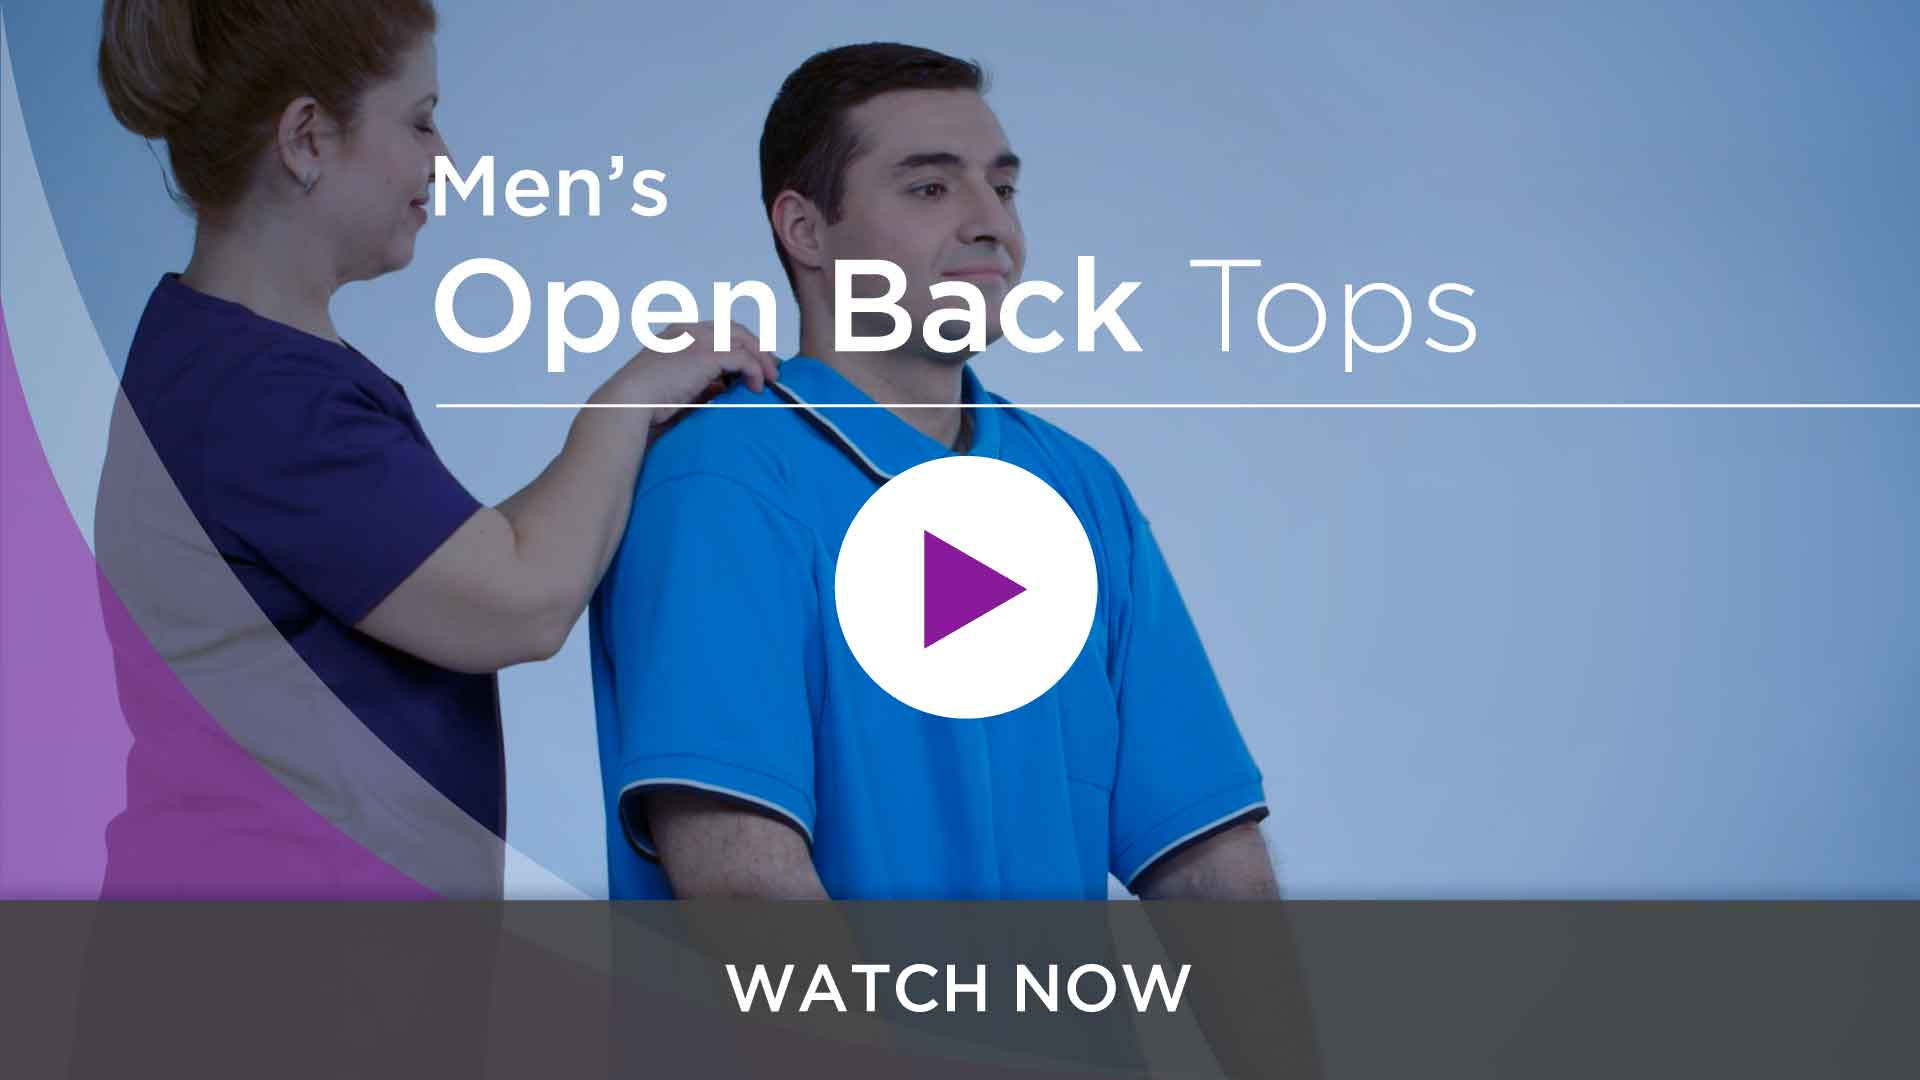 Men's Open Back Adaptive Tops